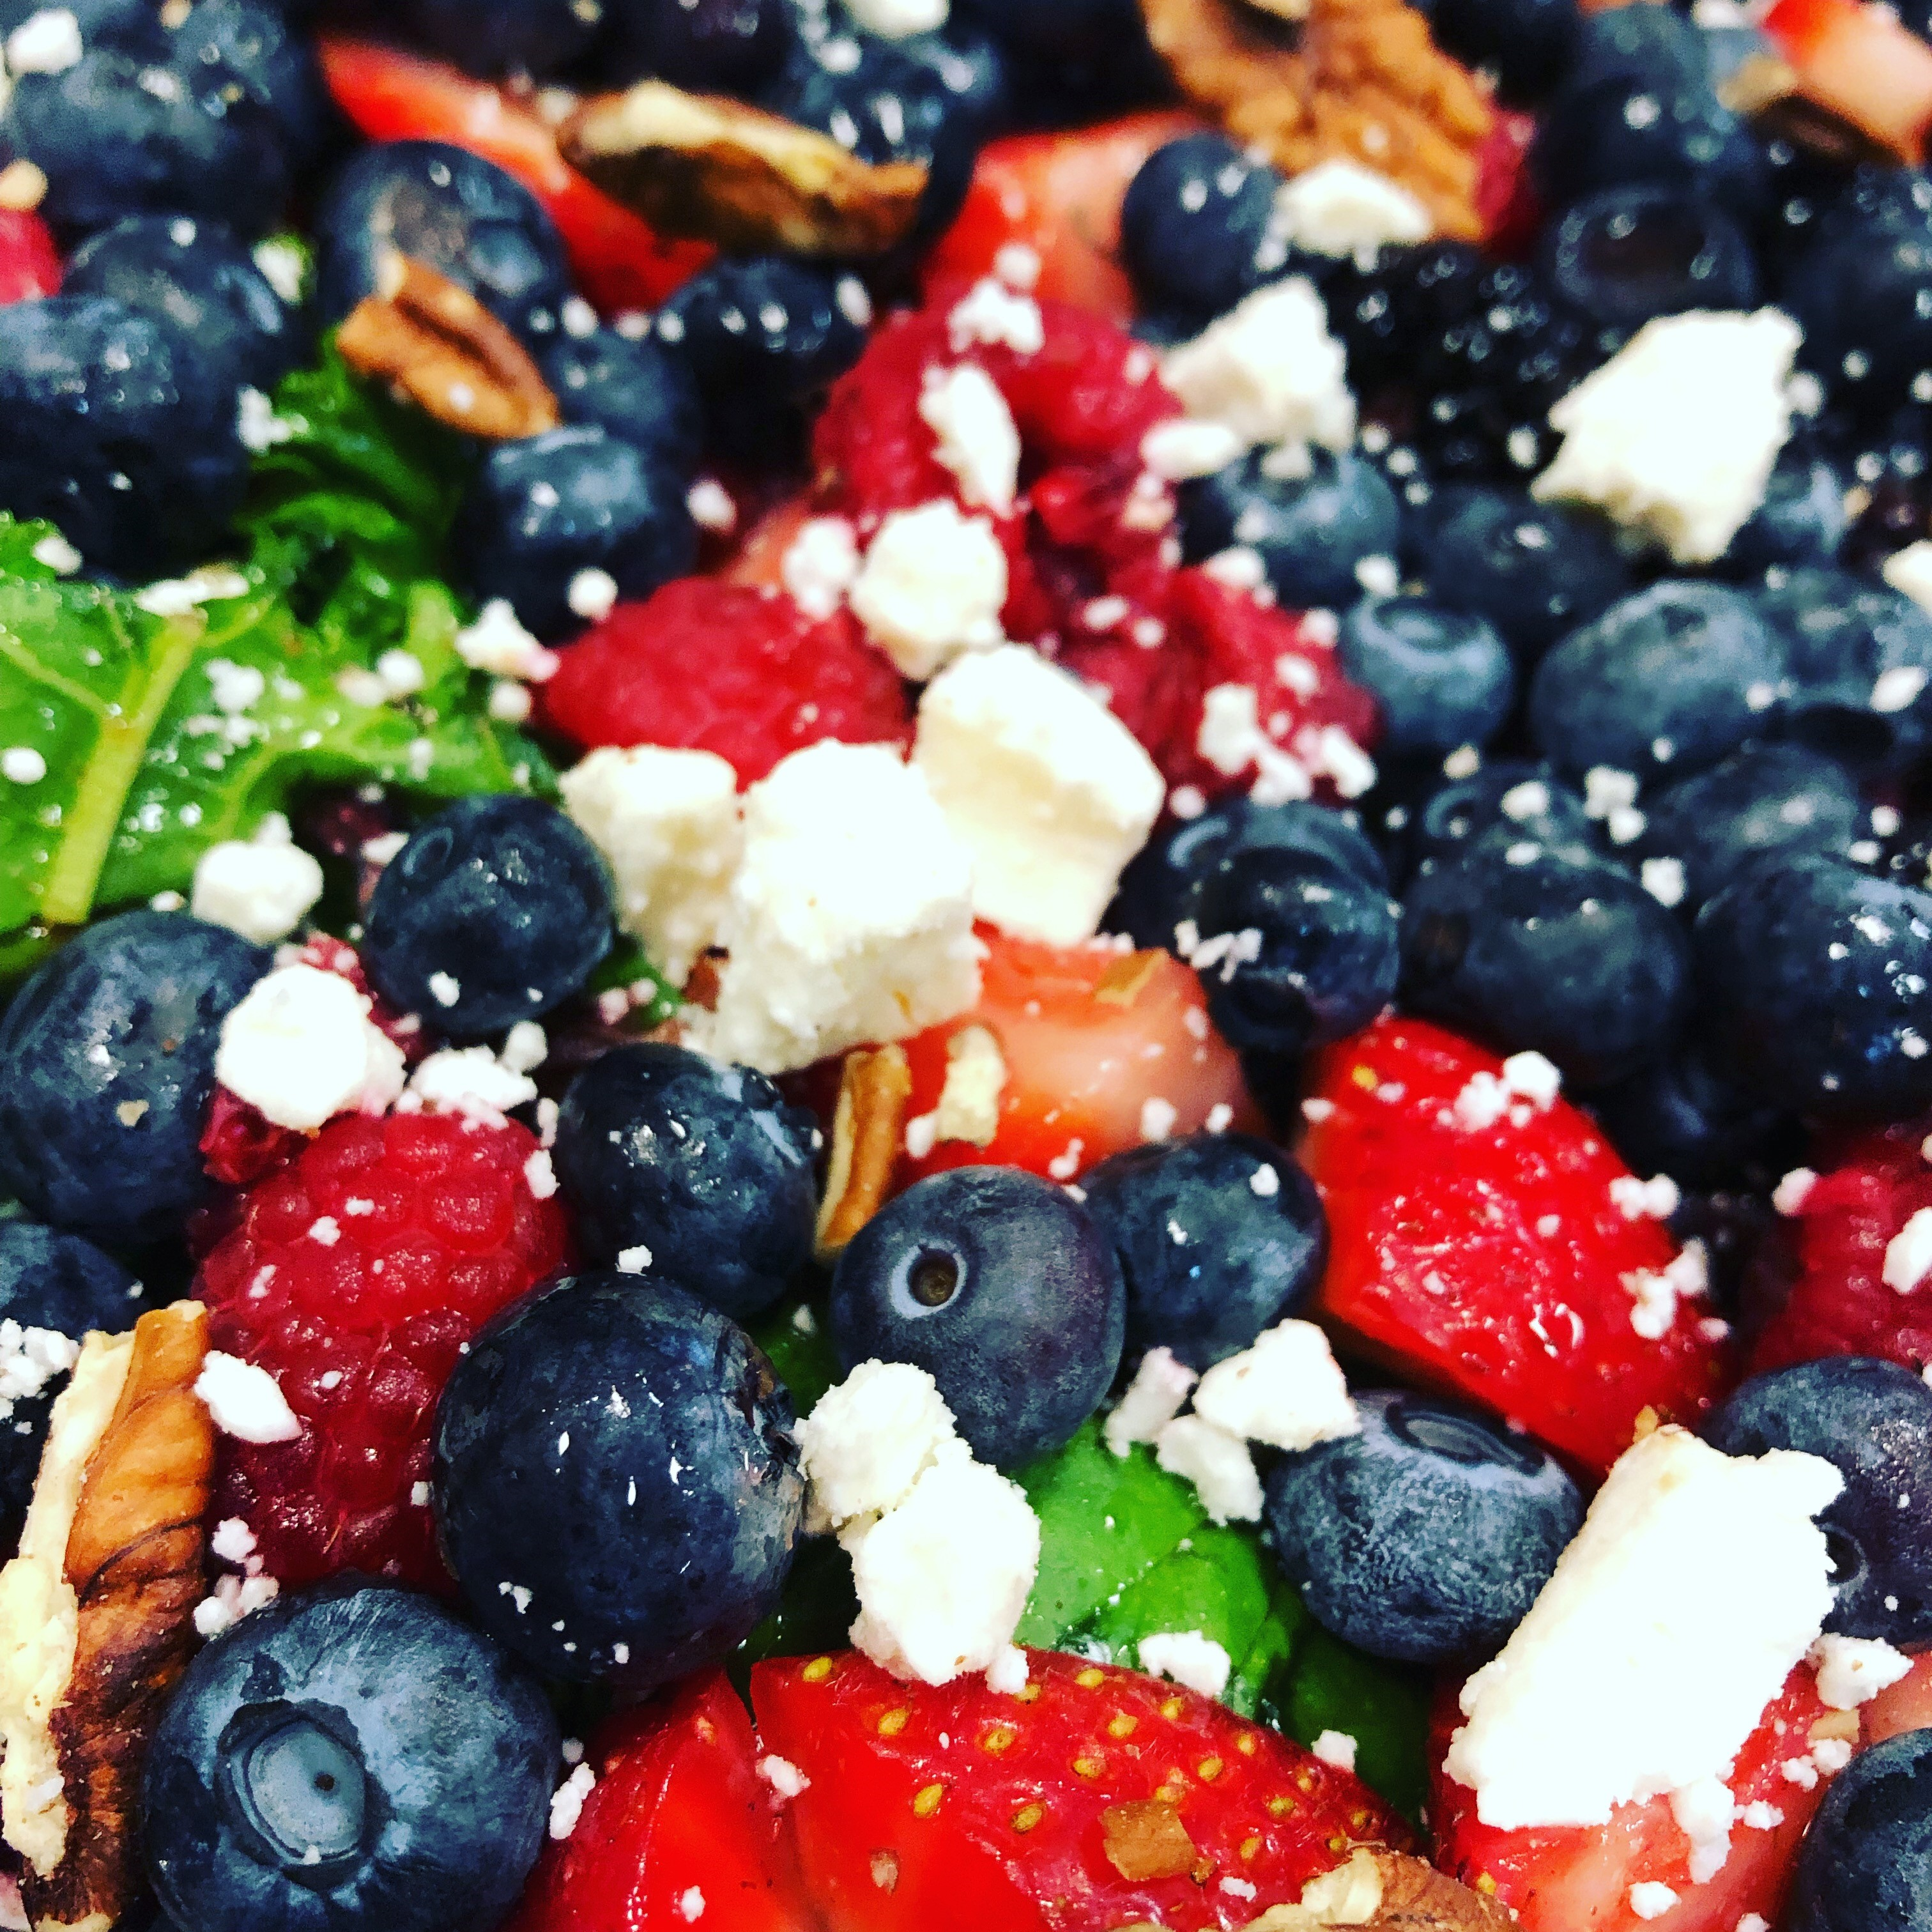 Salad with blueberries, strawberries, and Feta cheese.